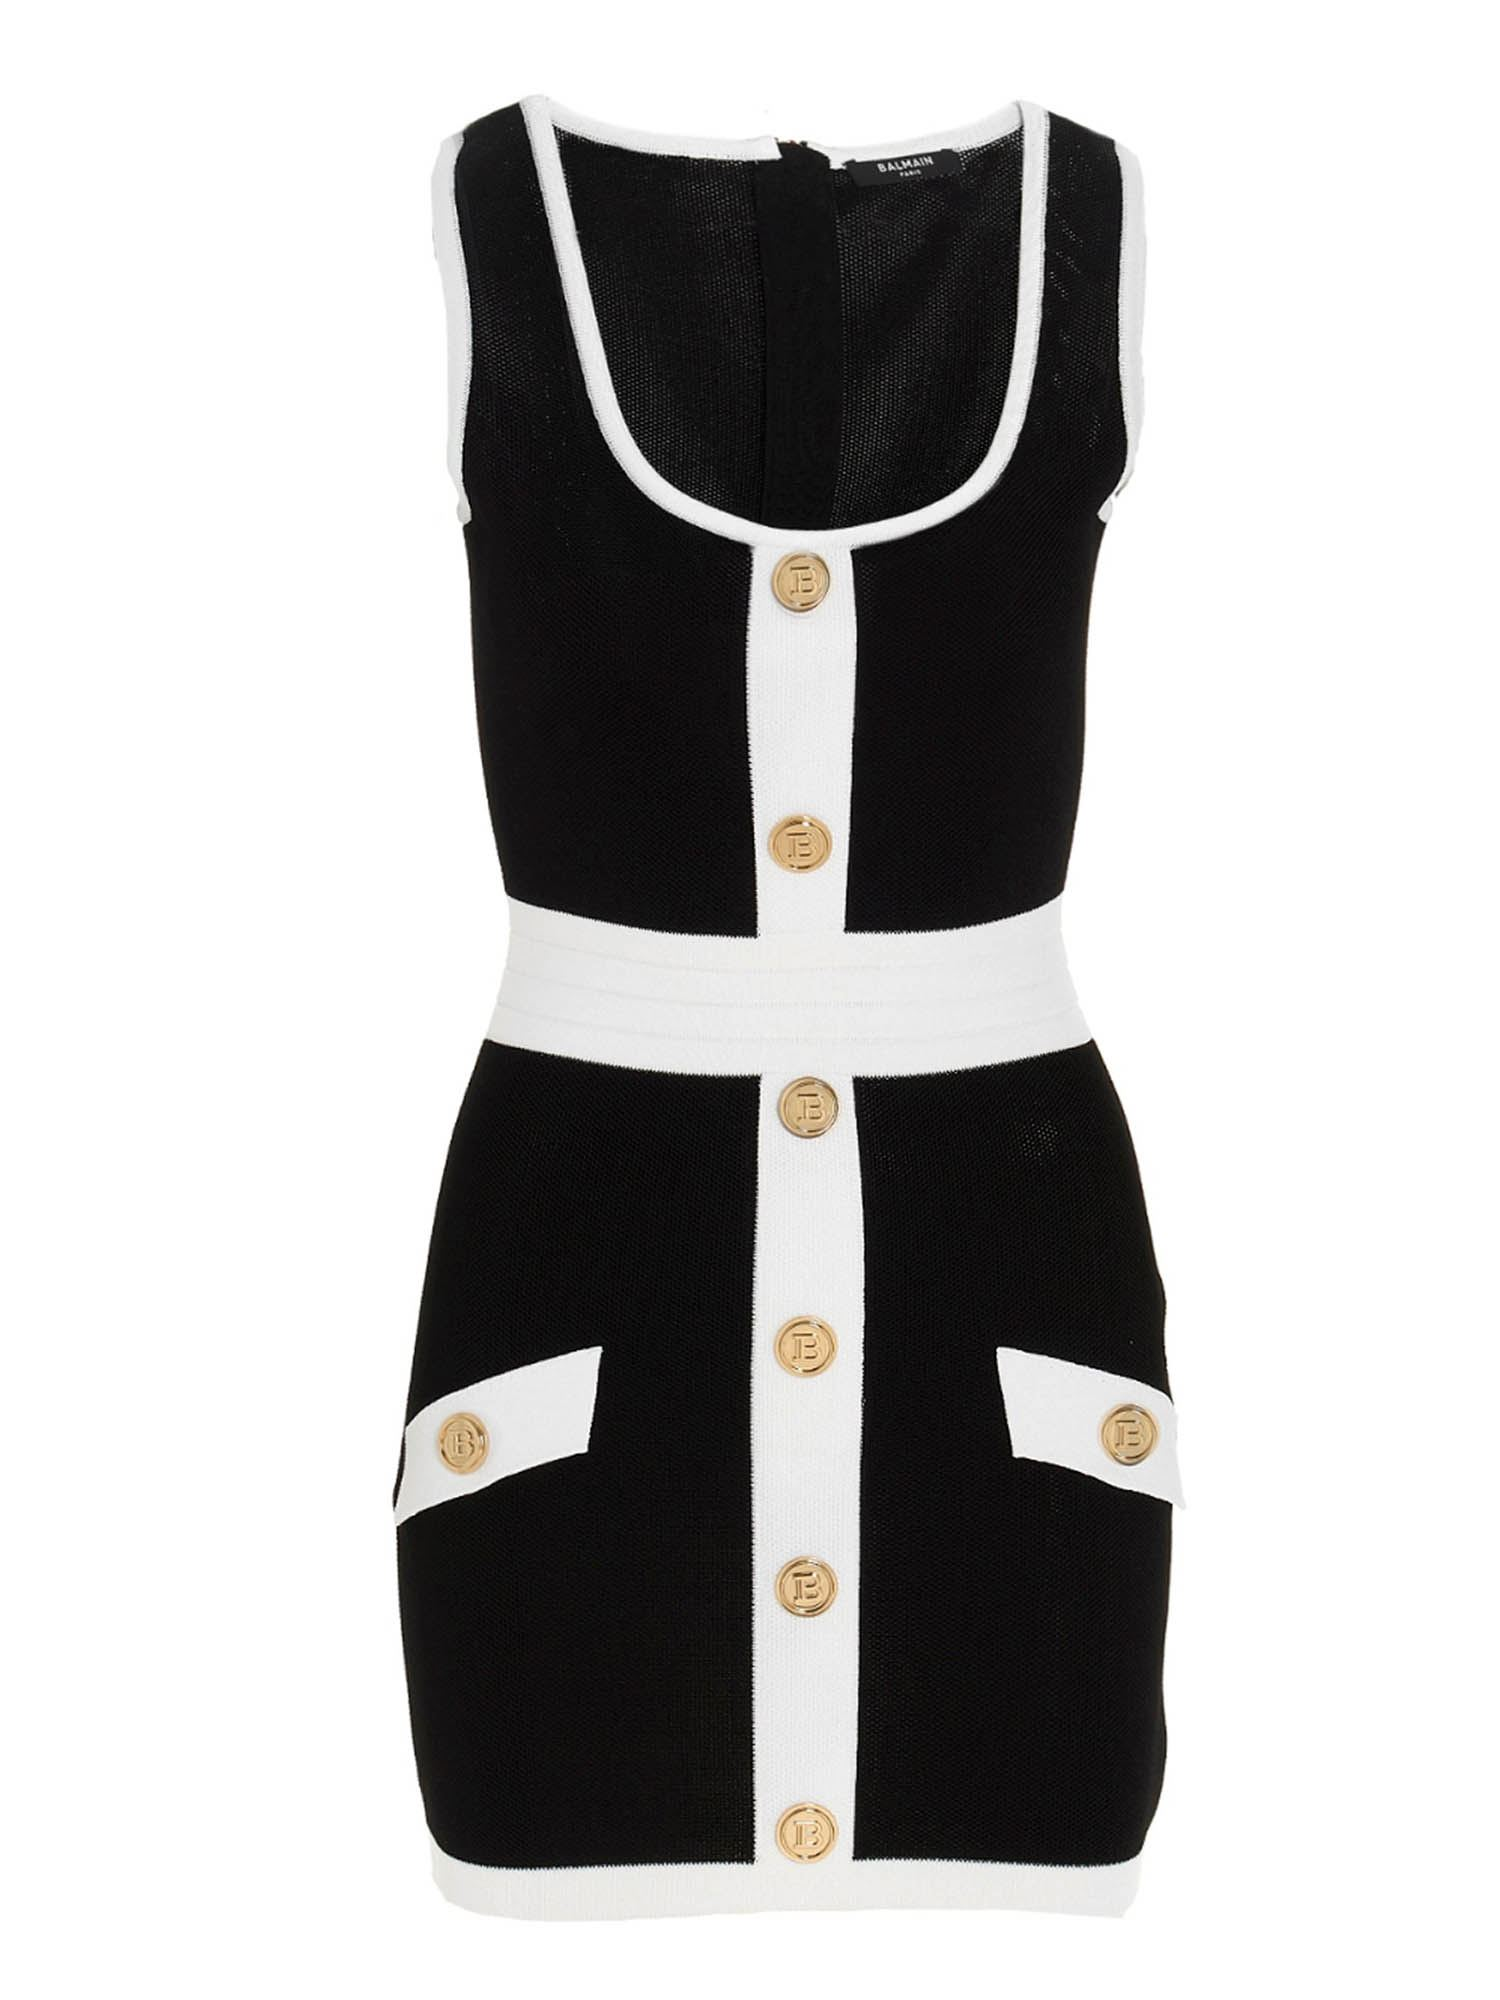 Balmain BUTTONED DRESS IN BLACK AND WHITE